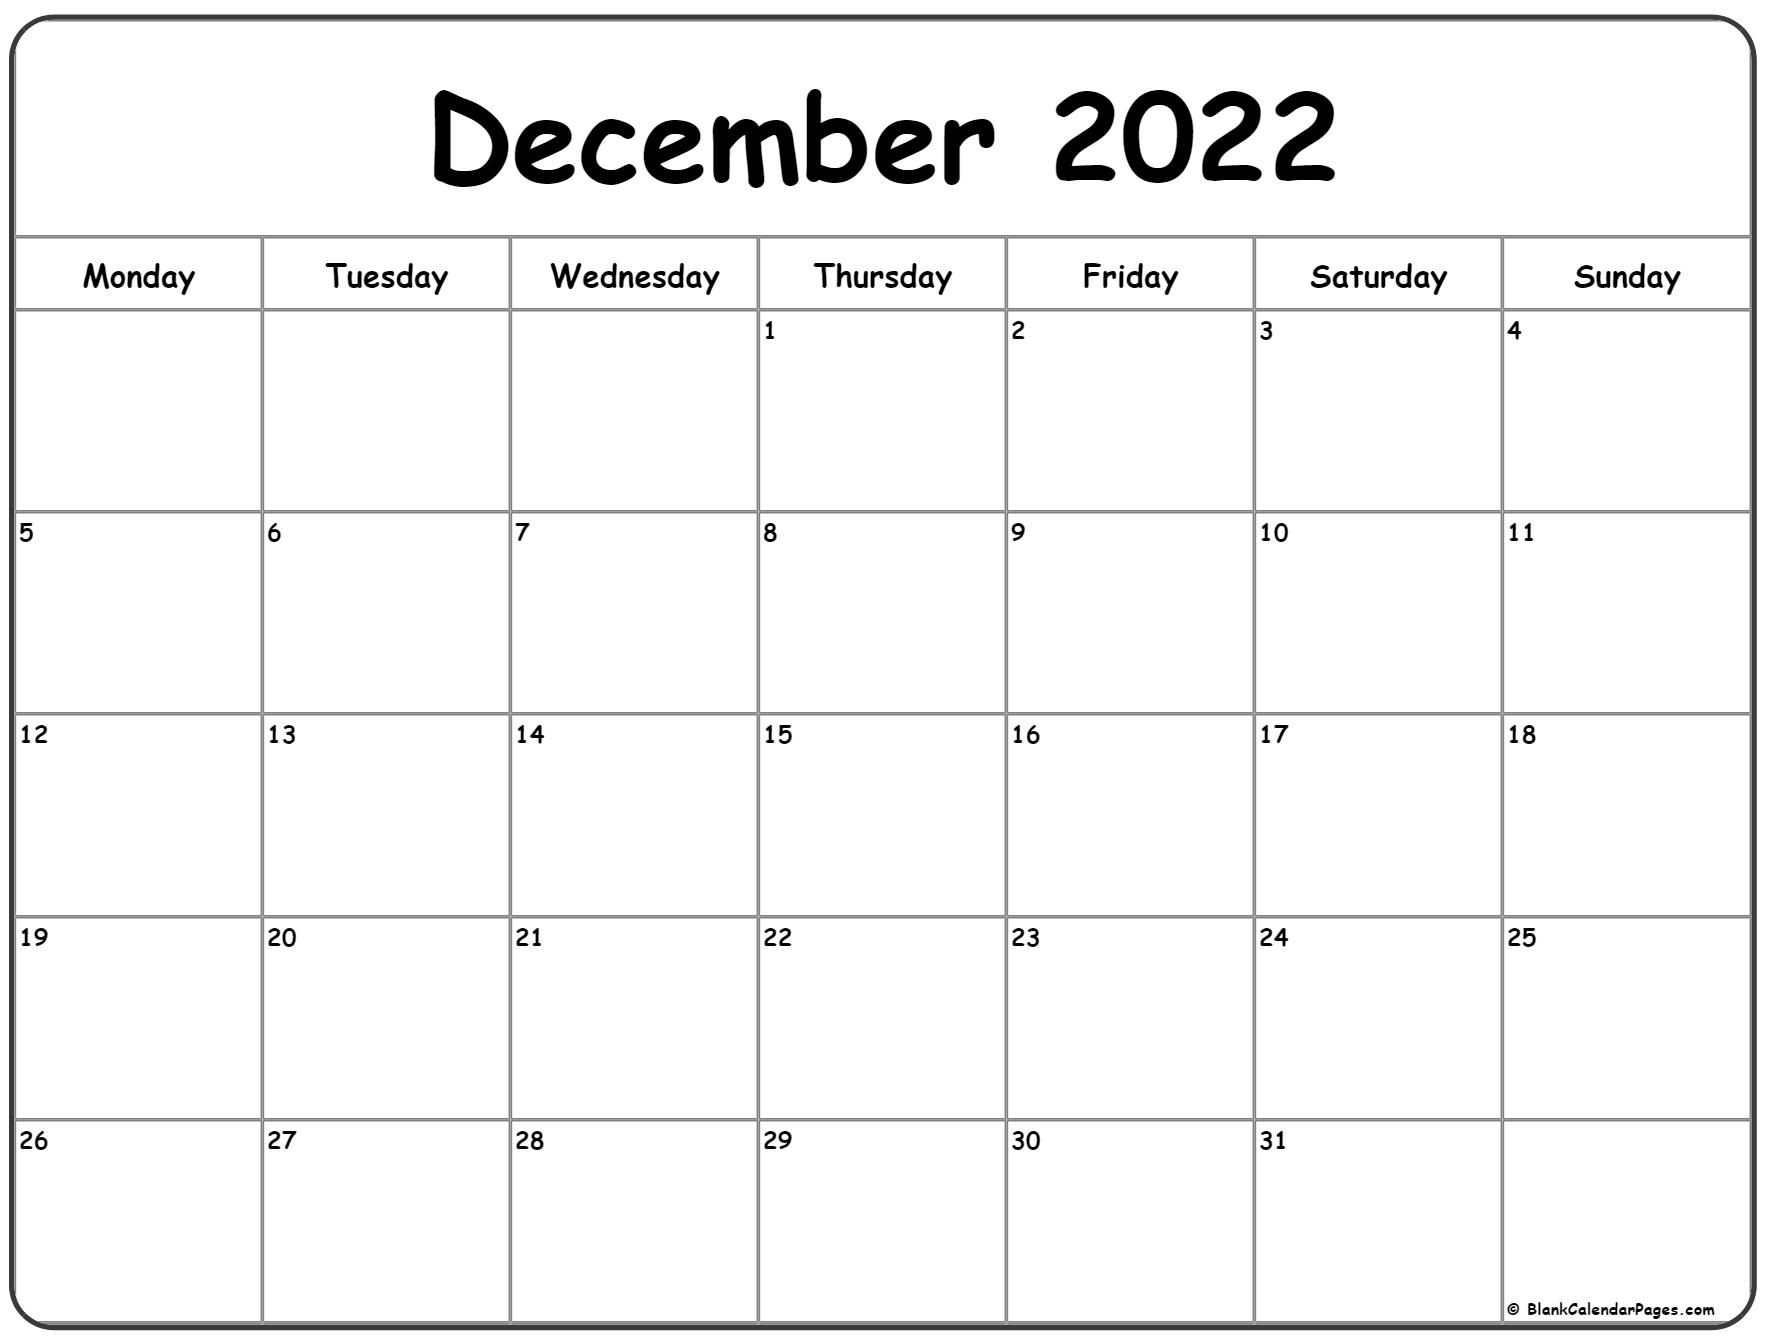 December 2022 Monday calendar. Monday to Sunday